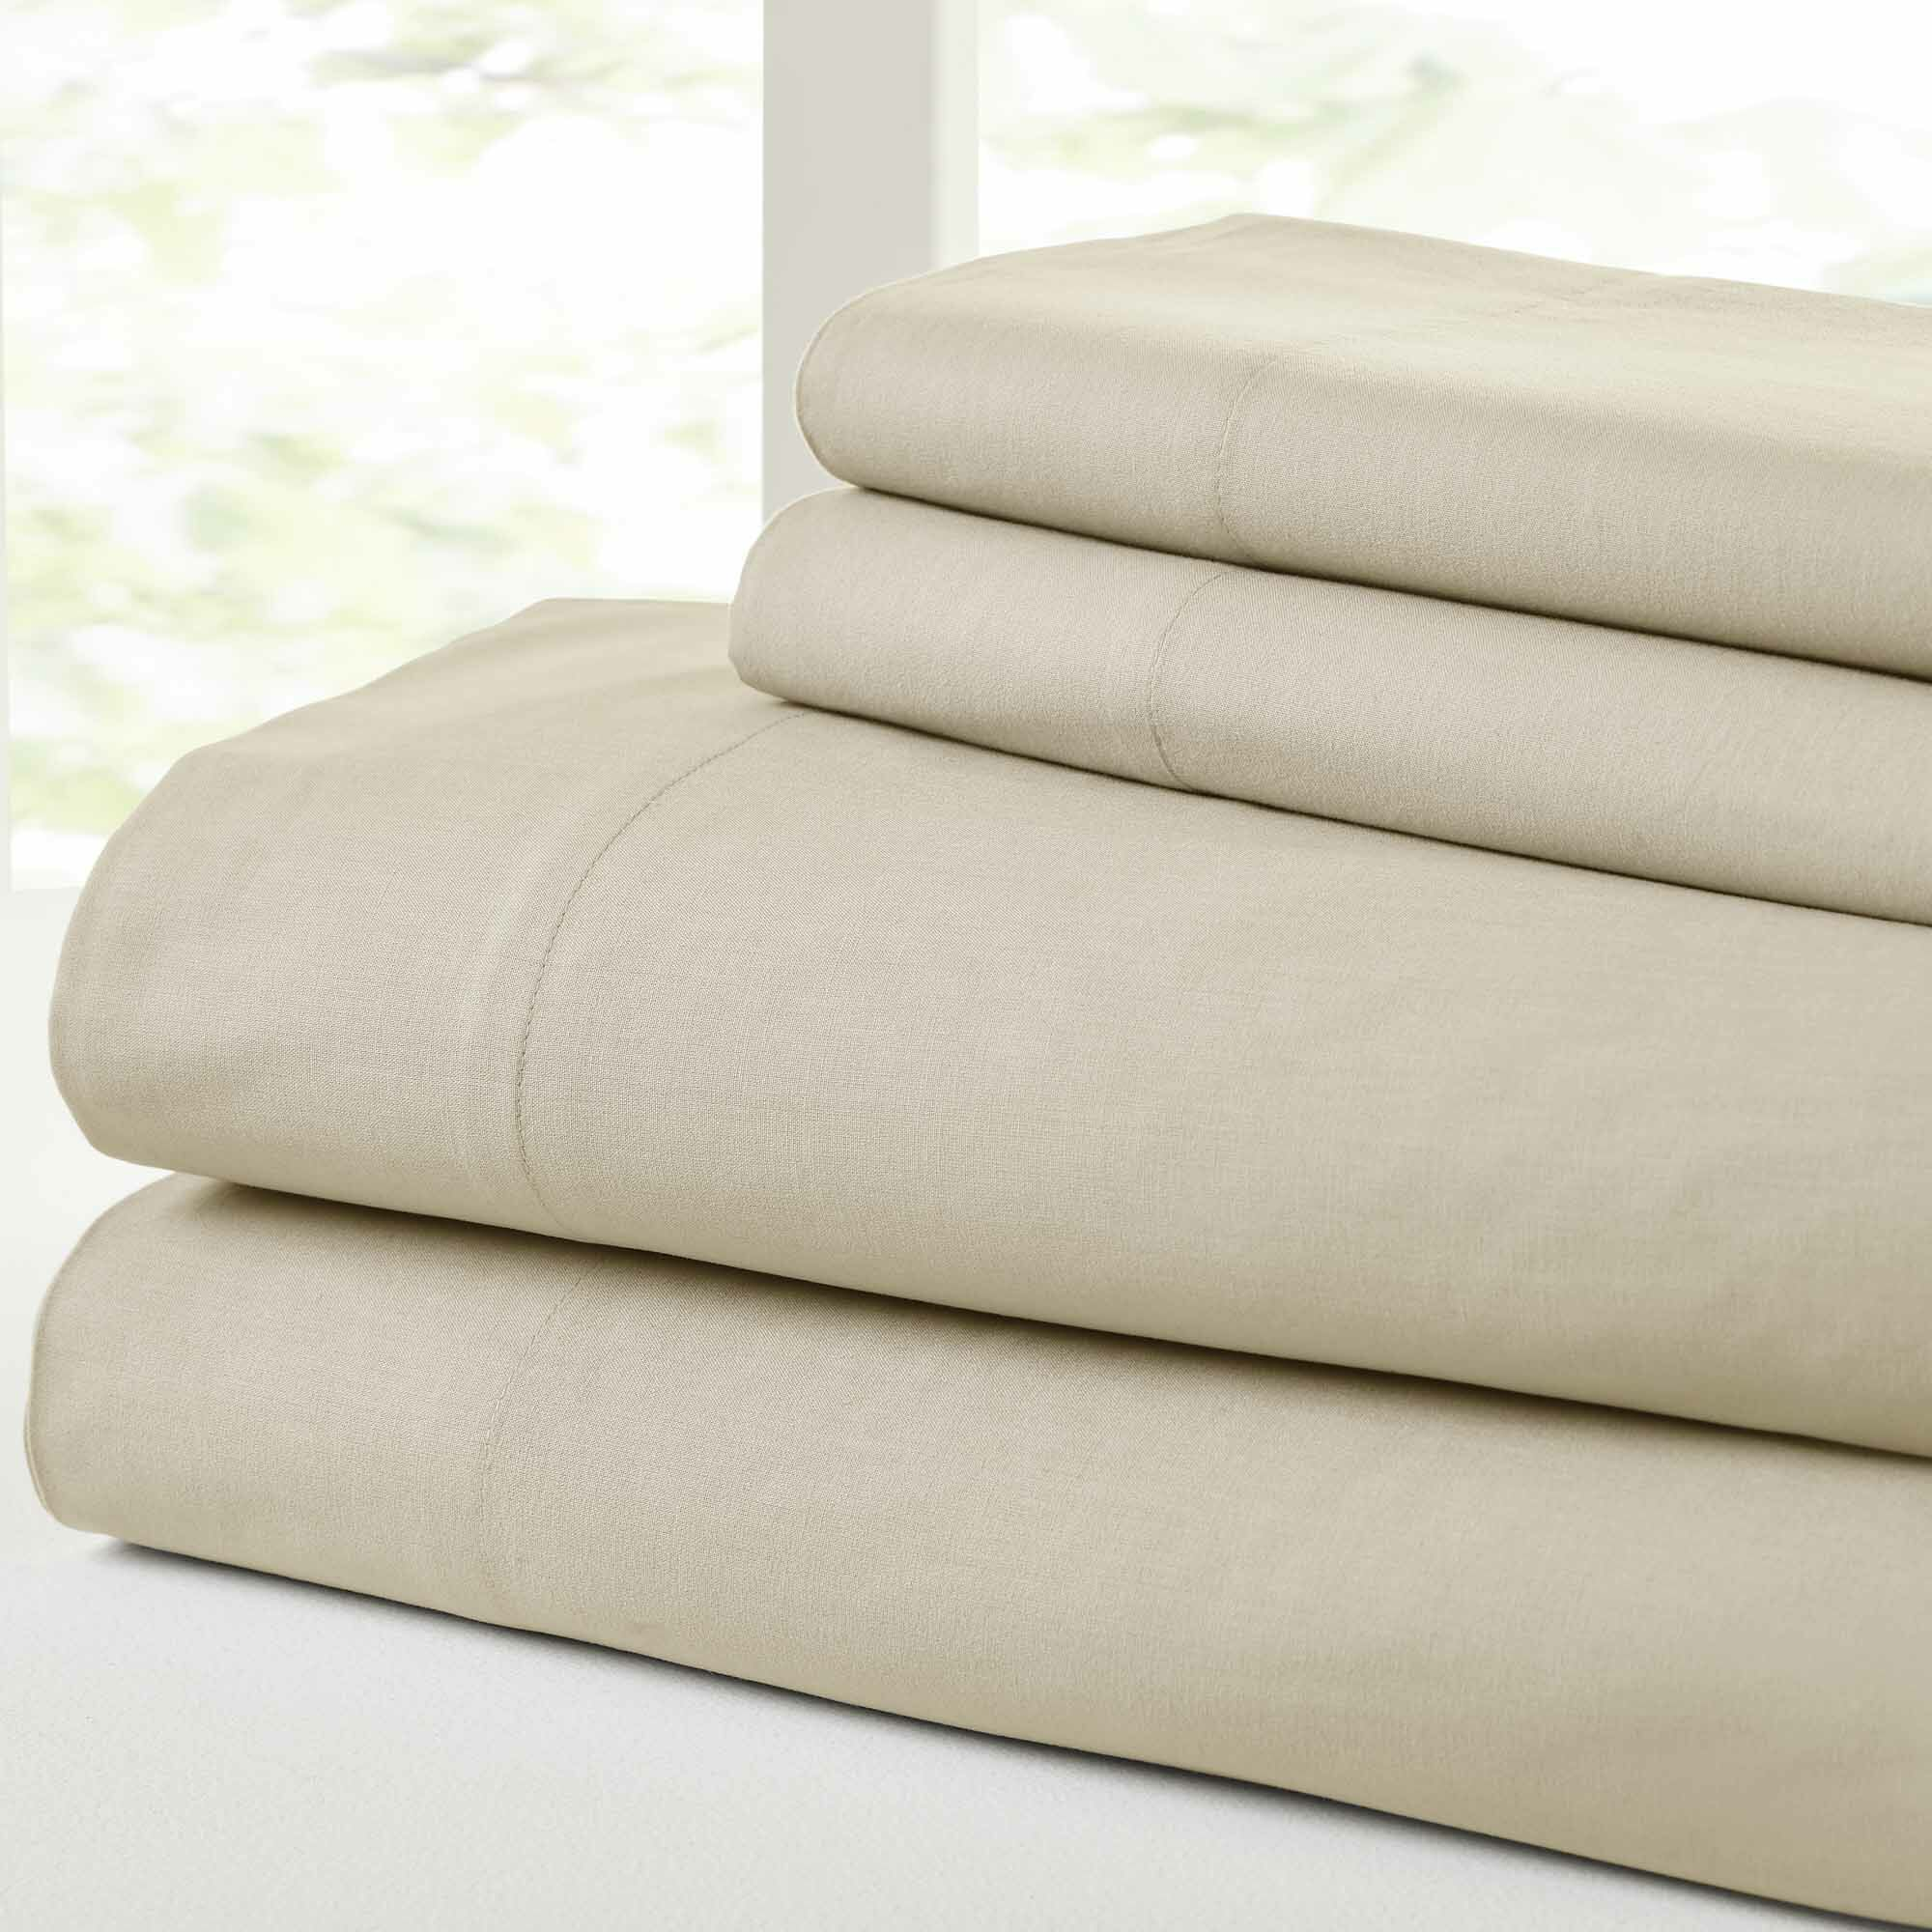 Savion Vintage 100% Cotton Sheet Set Size: King, Color: Sand/Lt. Taupe